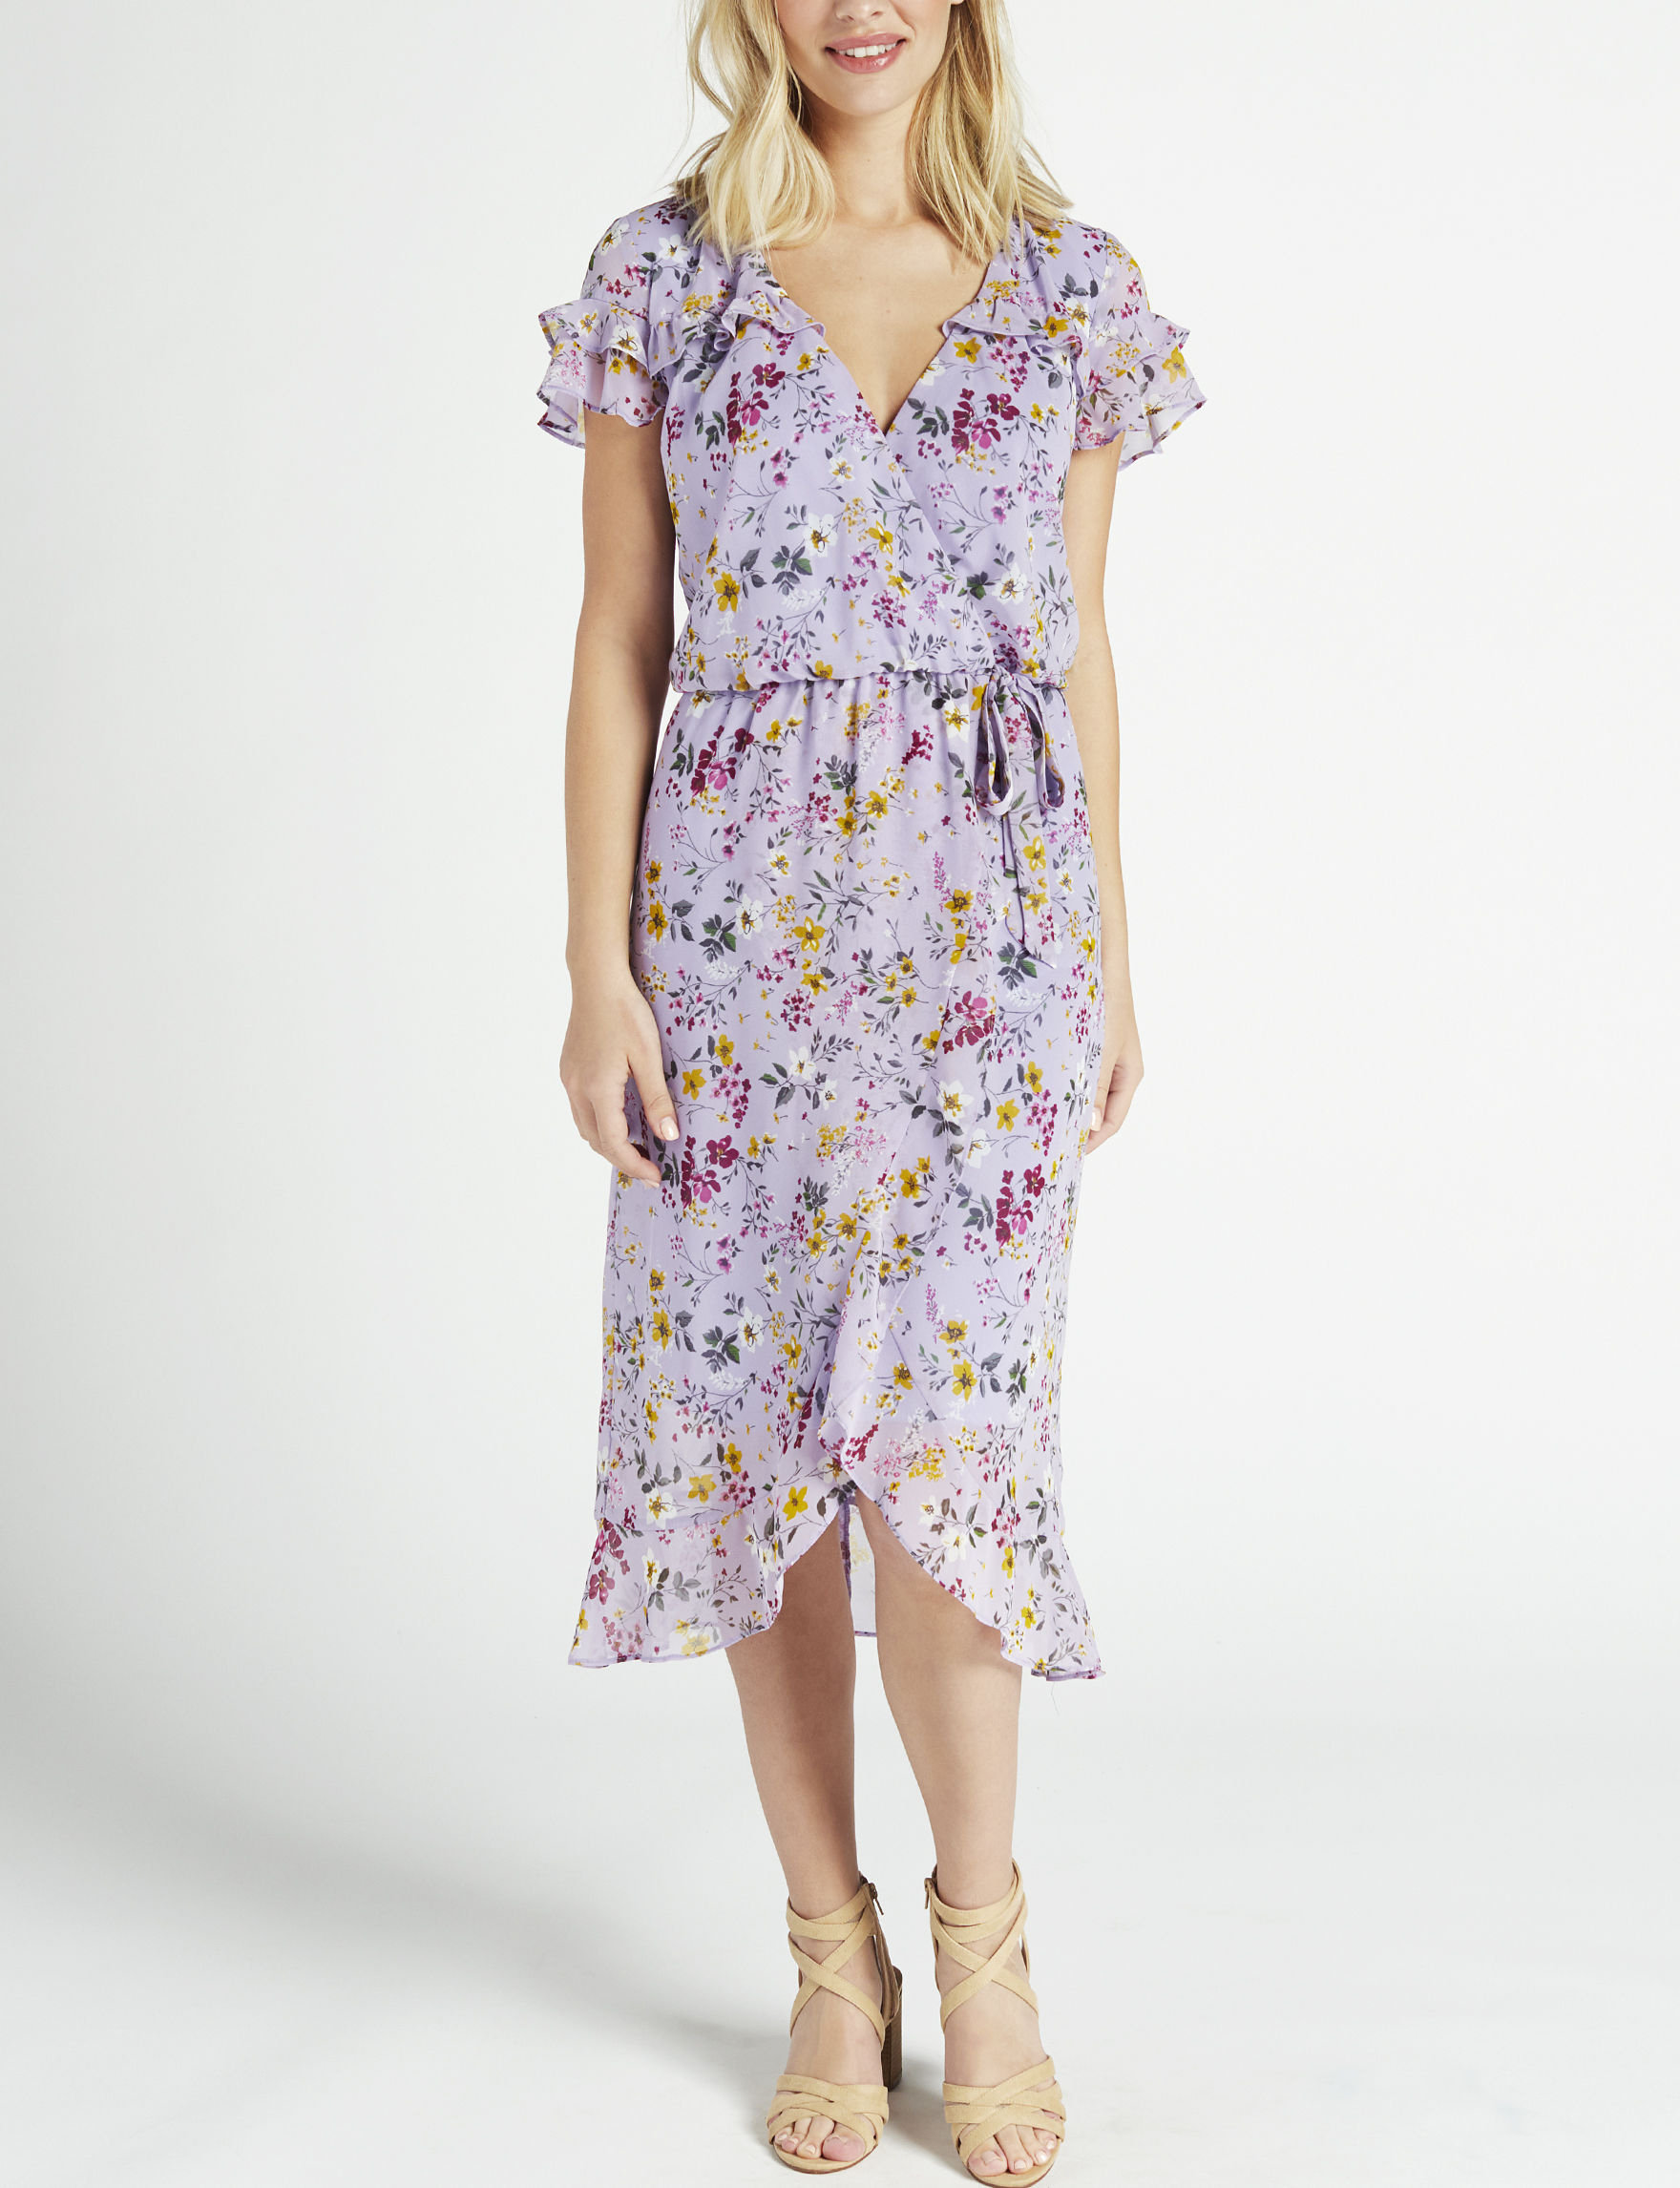 Perceptions Lilac Everyday & Casual